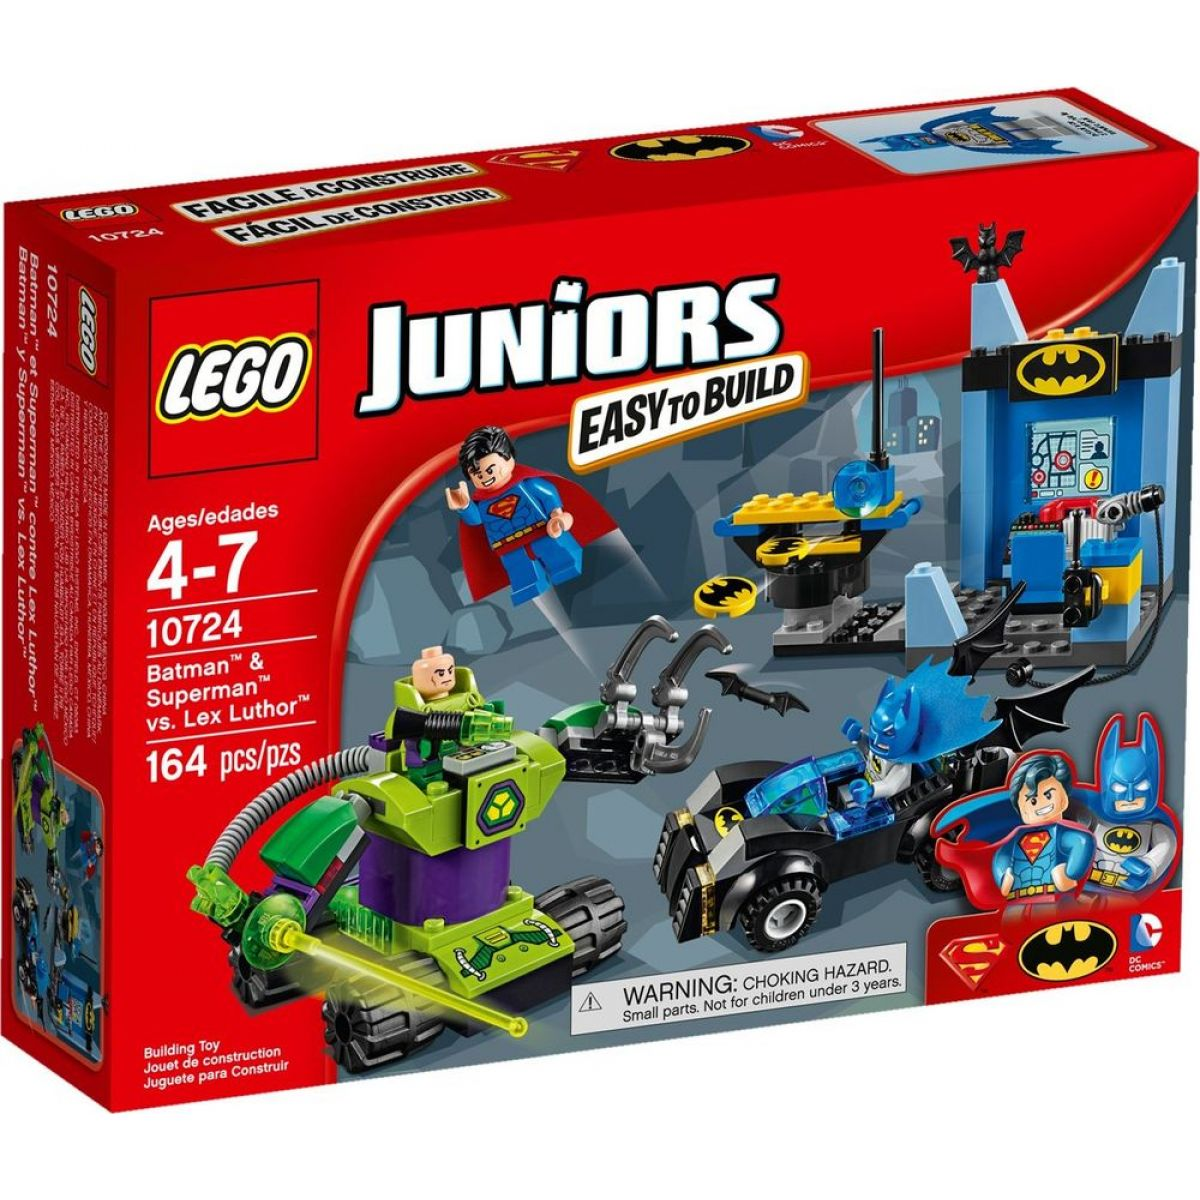 LEGO Juniors 10724 Batman & Superman versus Lex Luthor